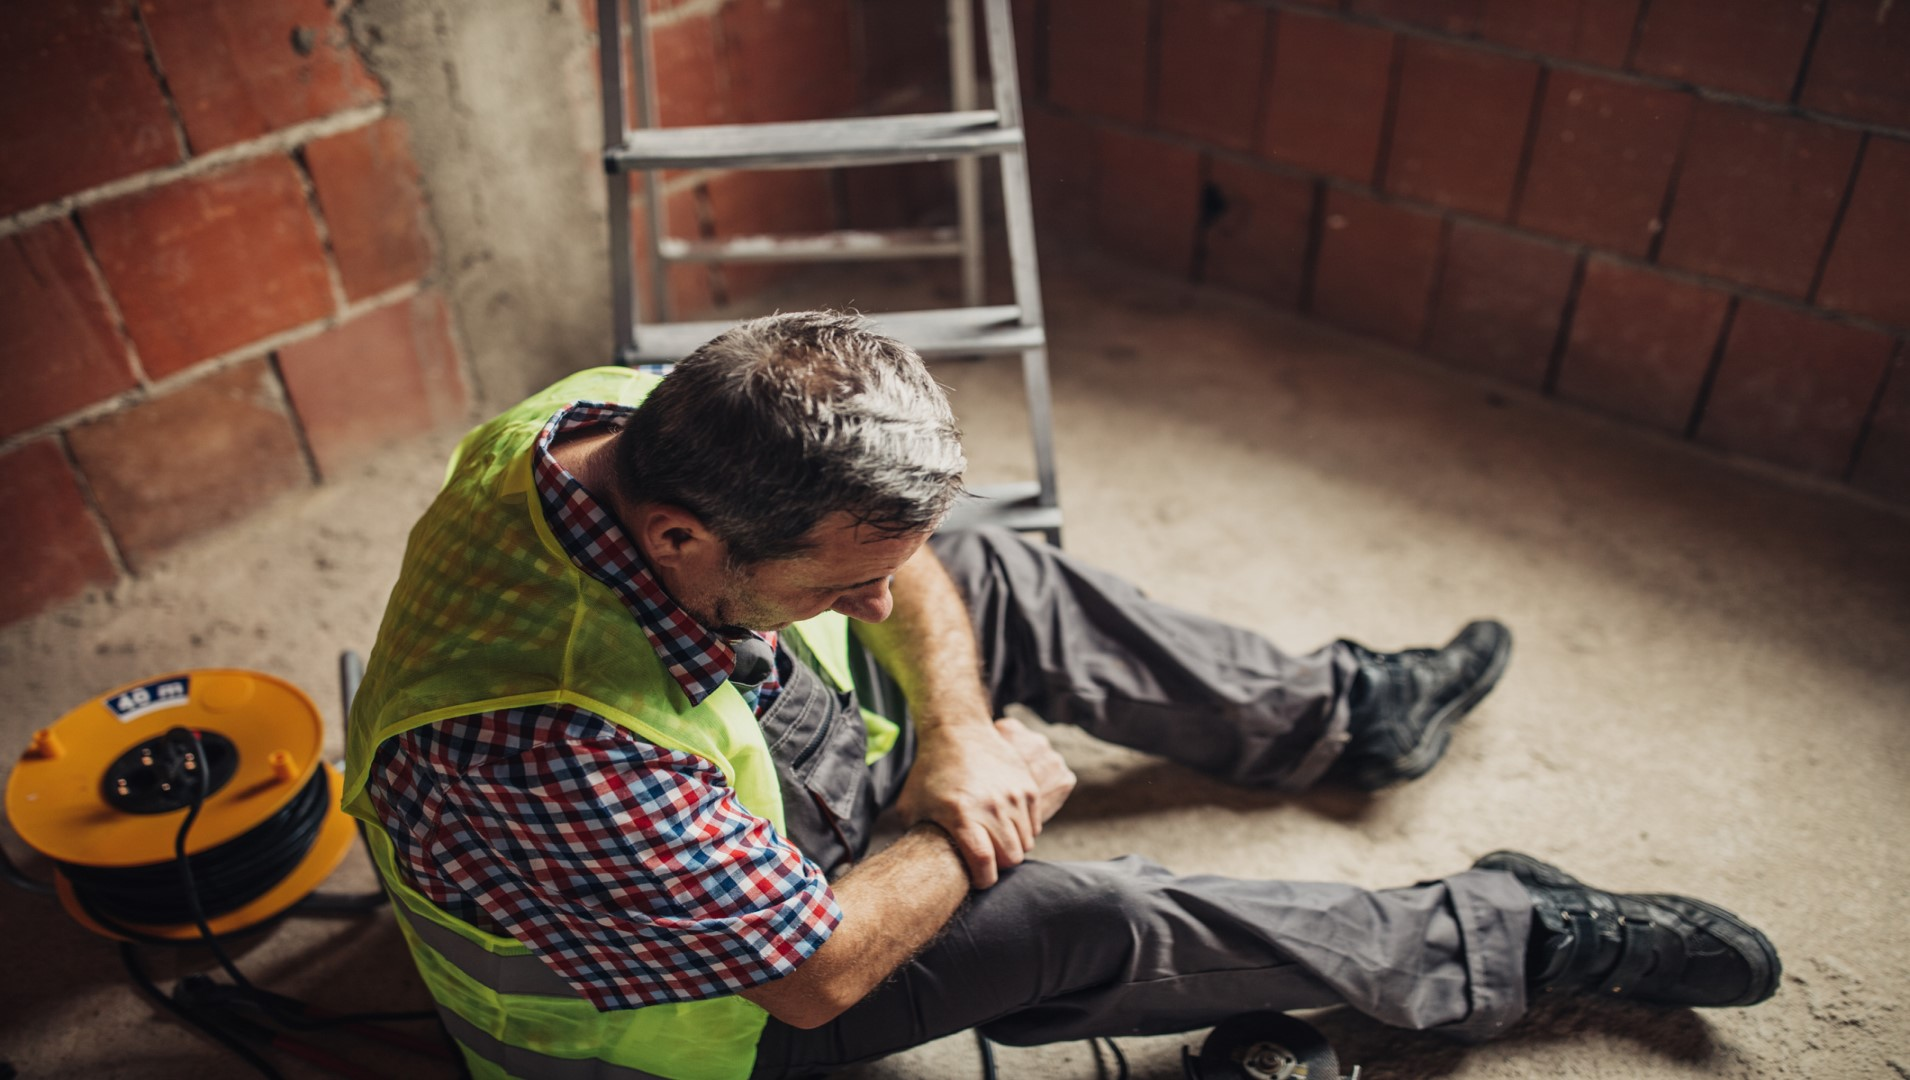 Male tradesman with osteoarthritis in his knee at work